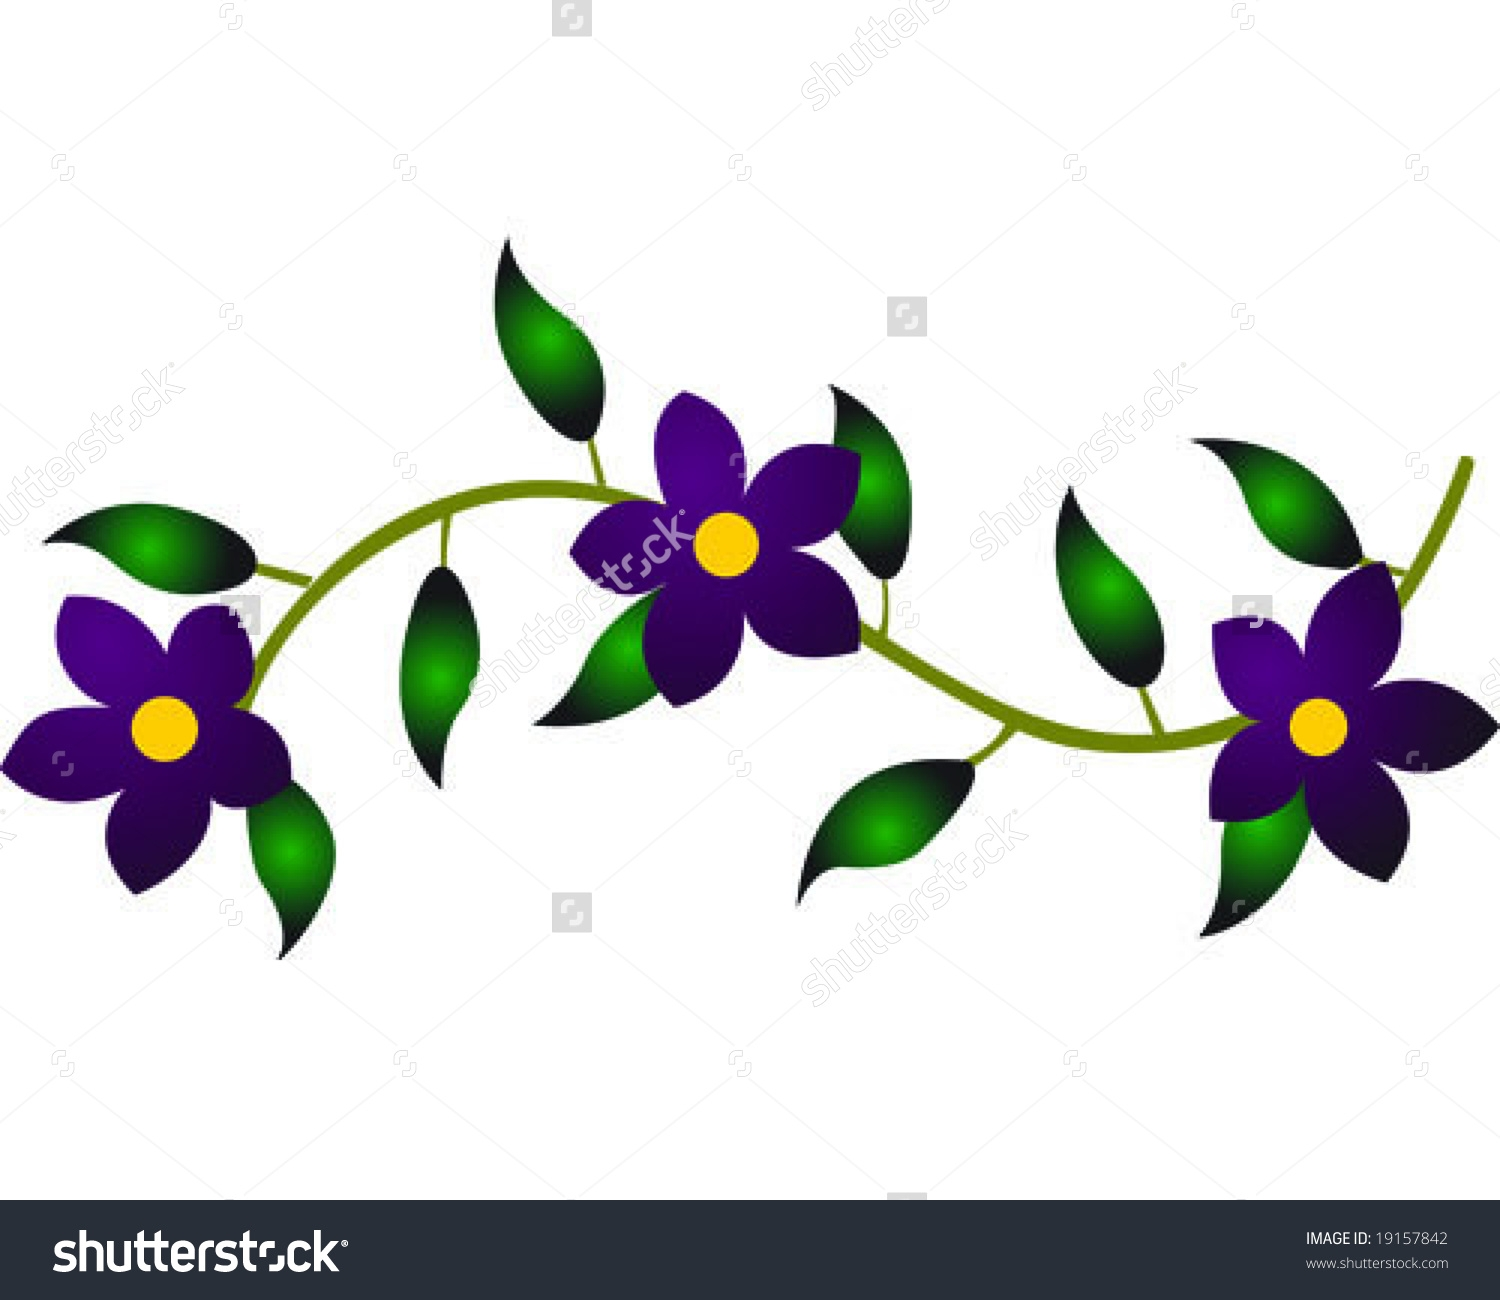 Flower And Vine Clipart.